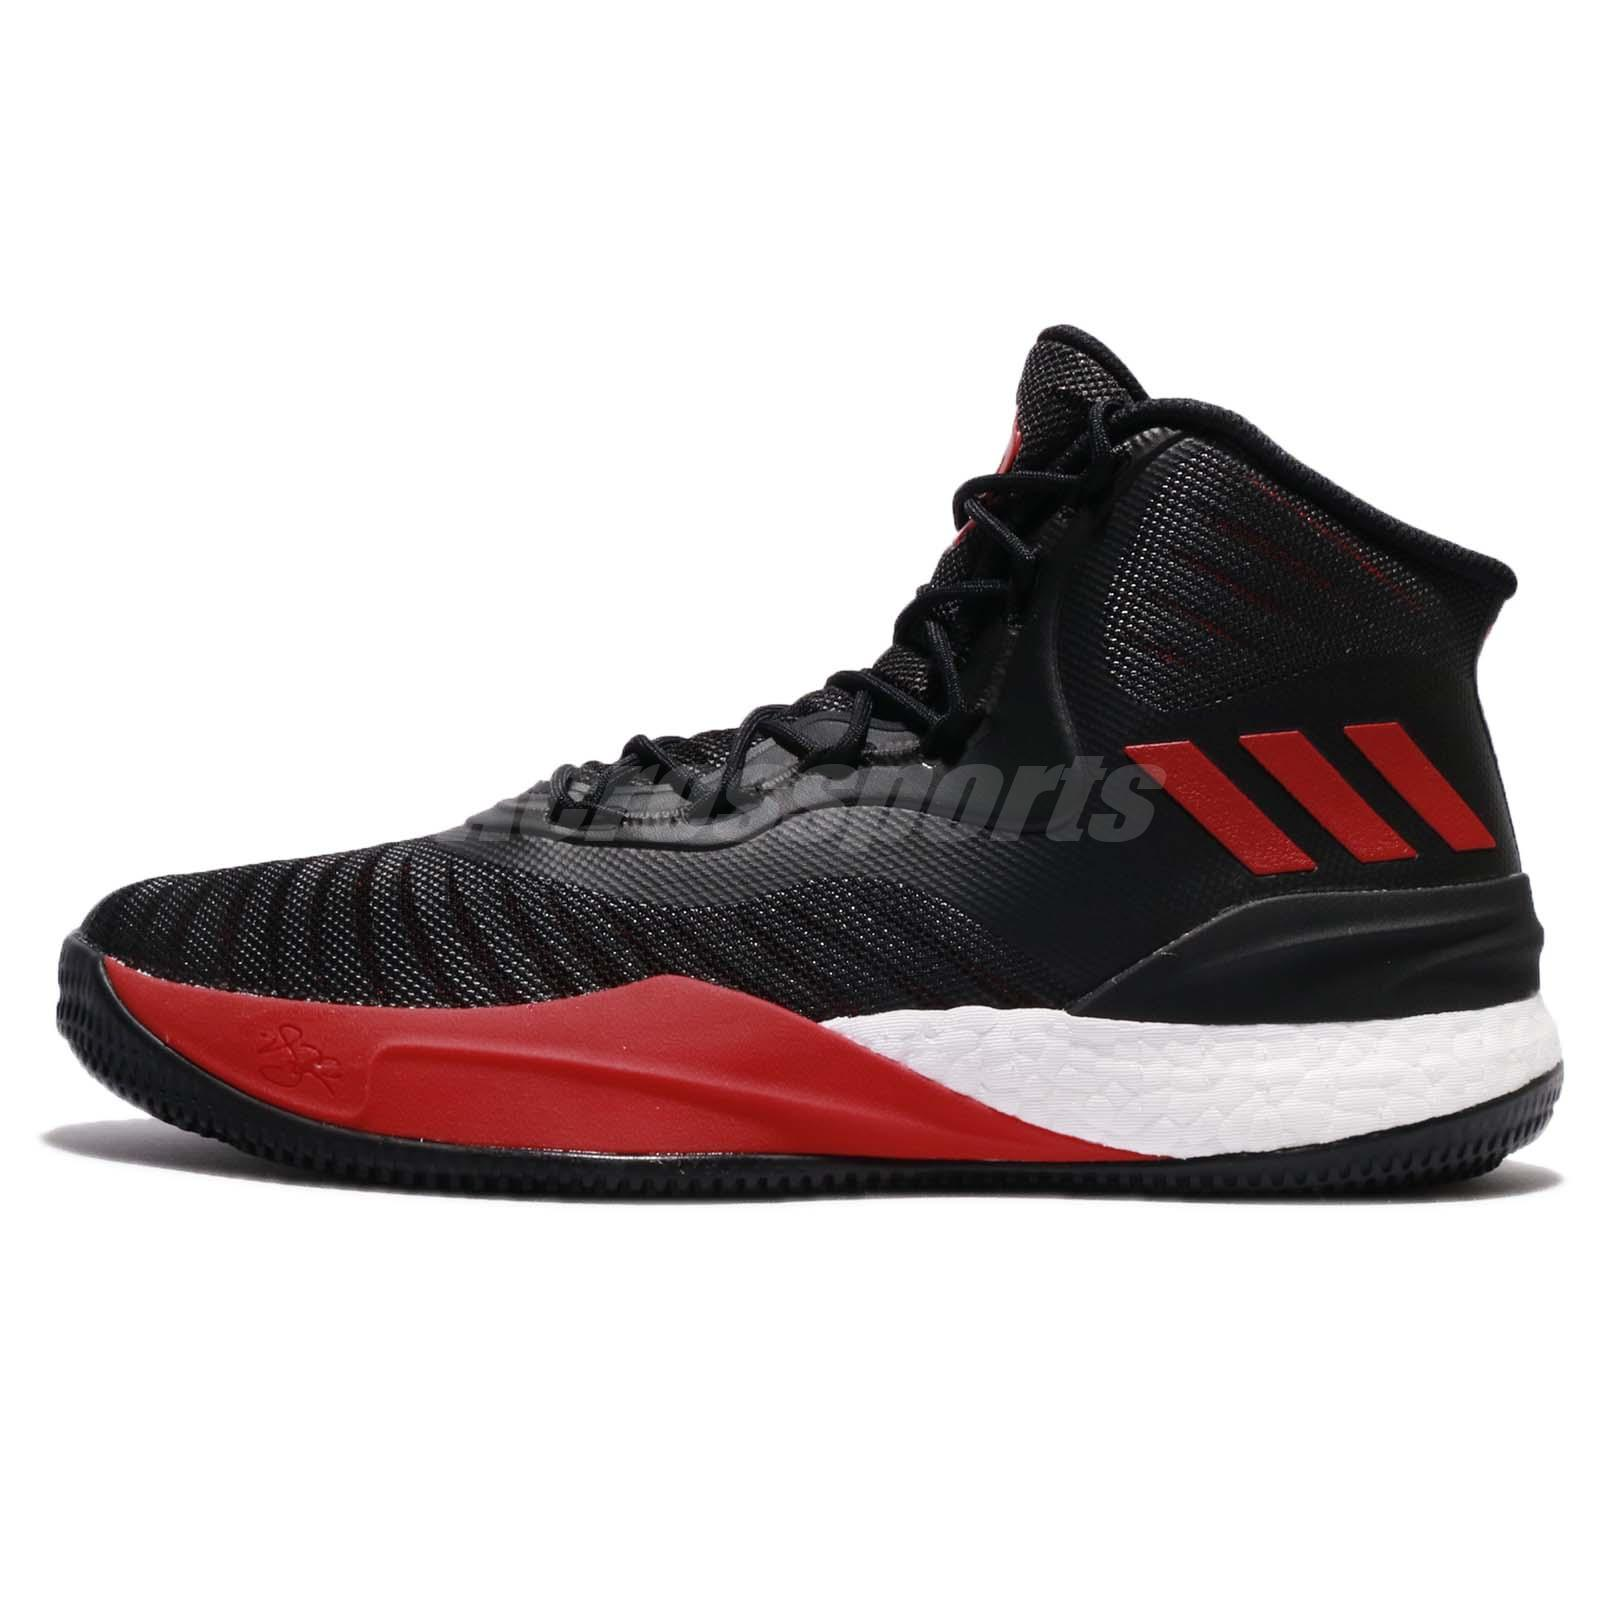 d03769f40892 ... rose 6 boost j gs black scarlet white gs basketball (d69766)   60 00.  Adidas. D rose lakeshore low basketball men s shoes   65 99. Adidas. D rose  7 mens ...